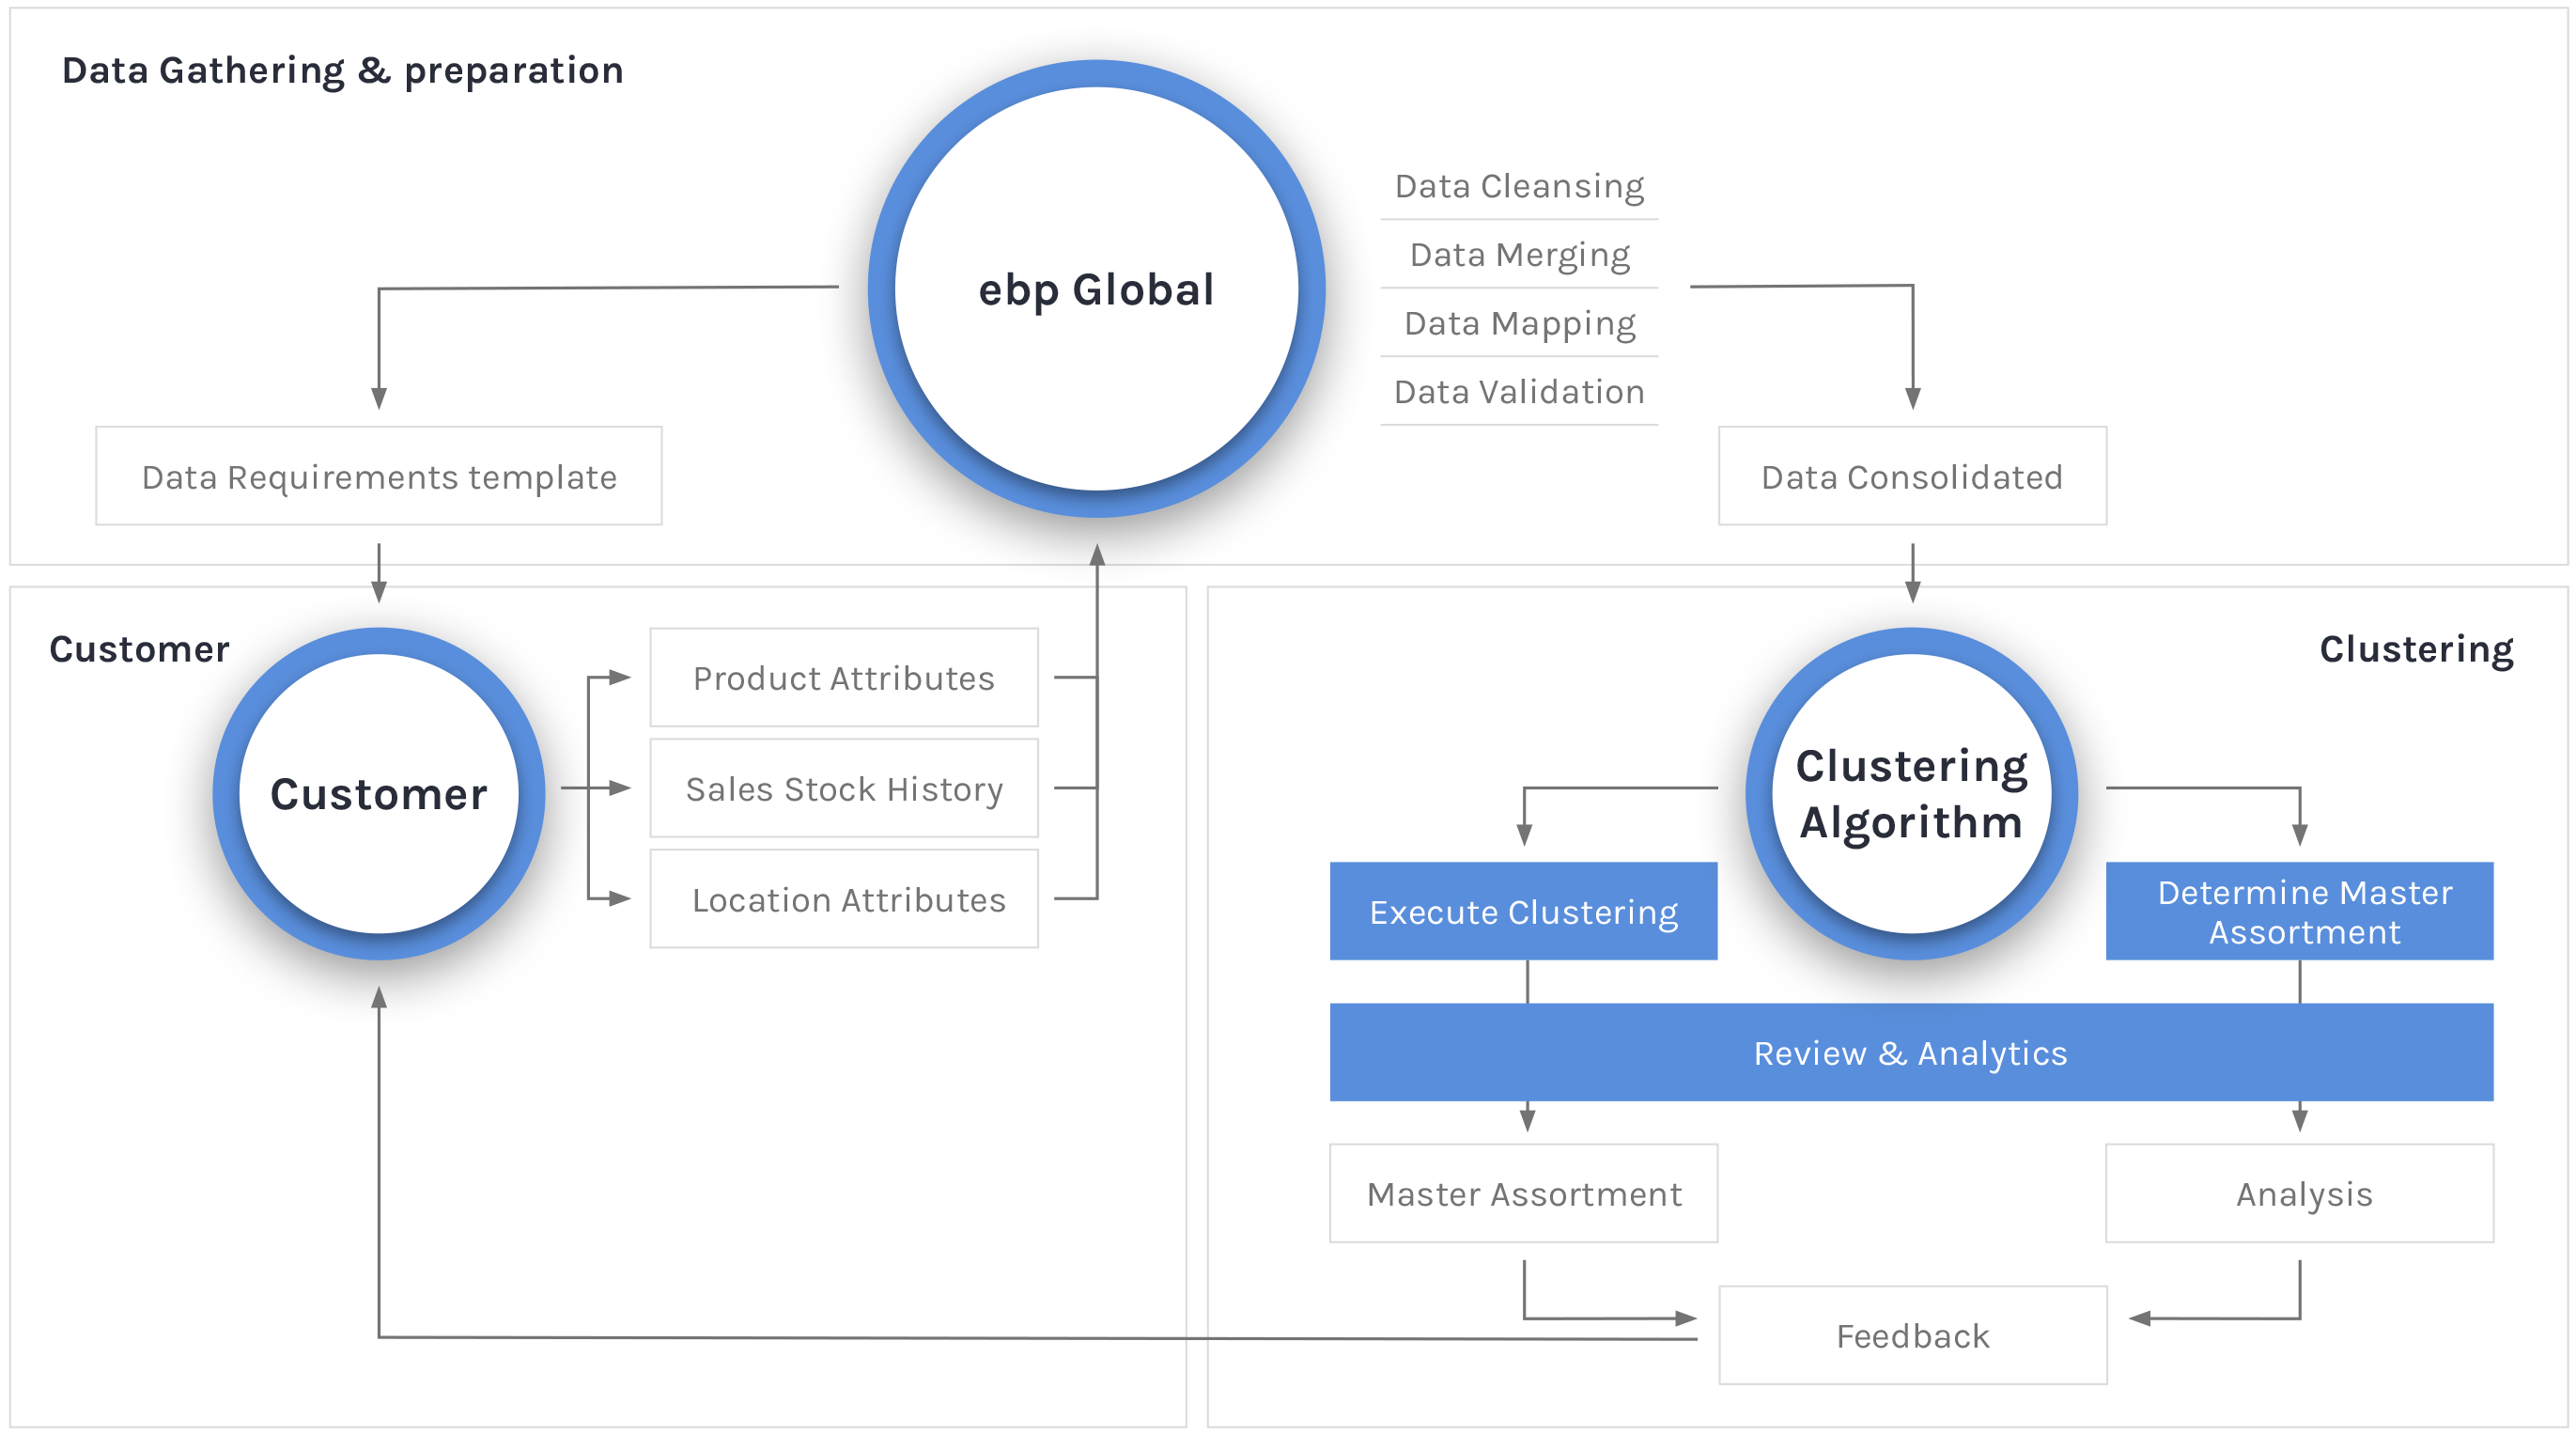 ebp Global - Store Clustering Architecture